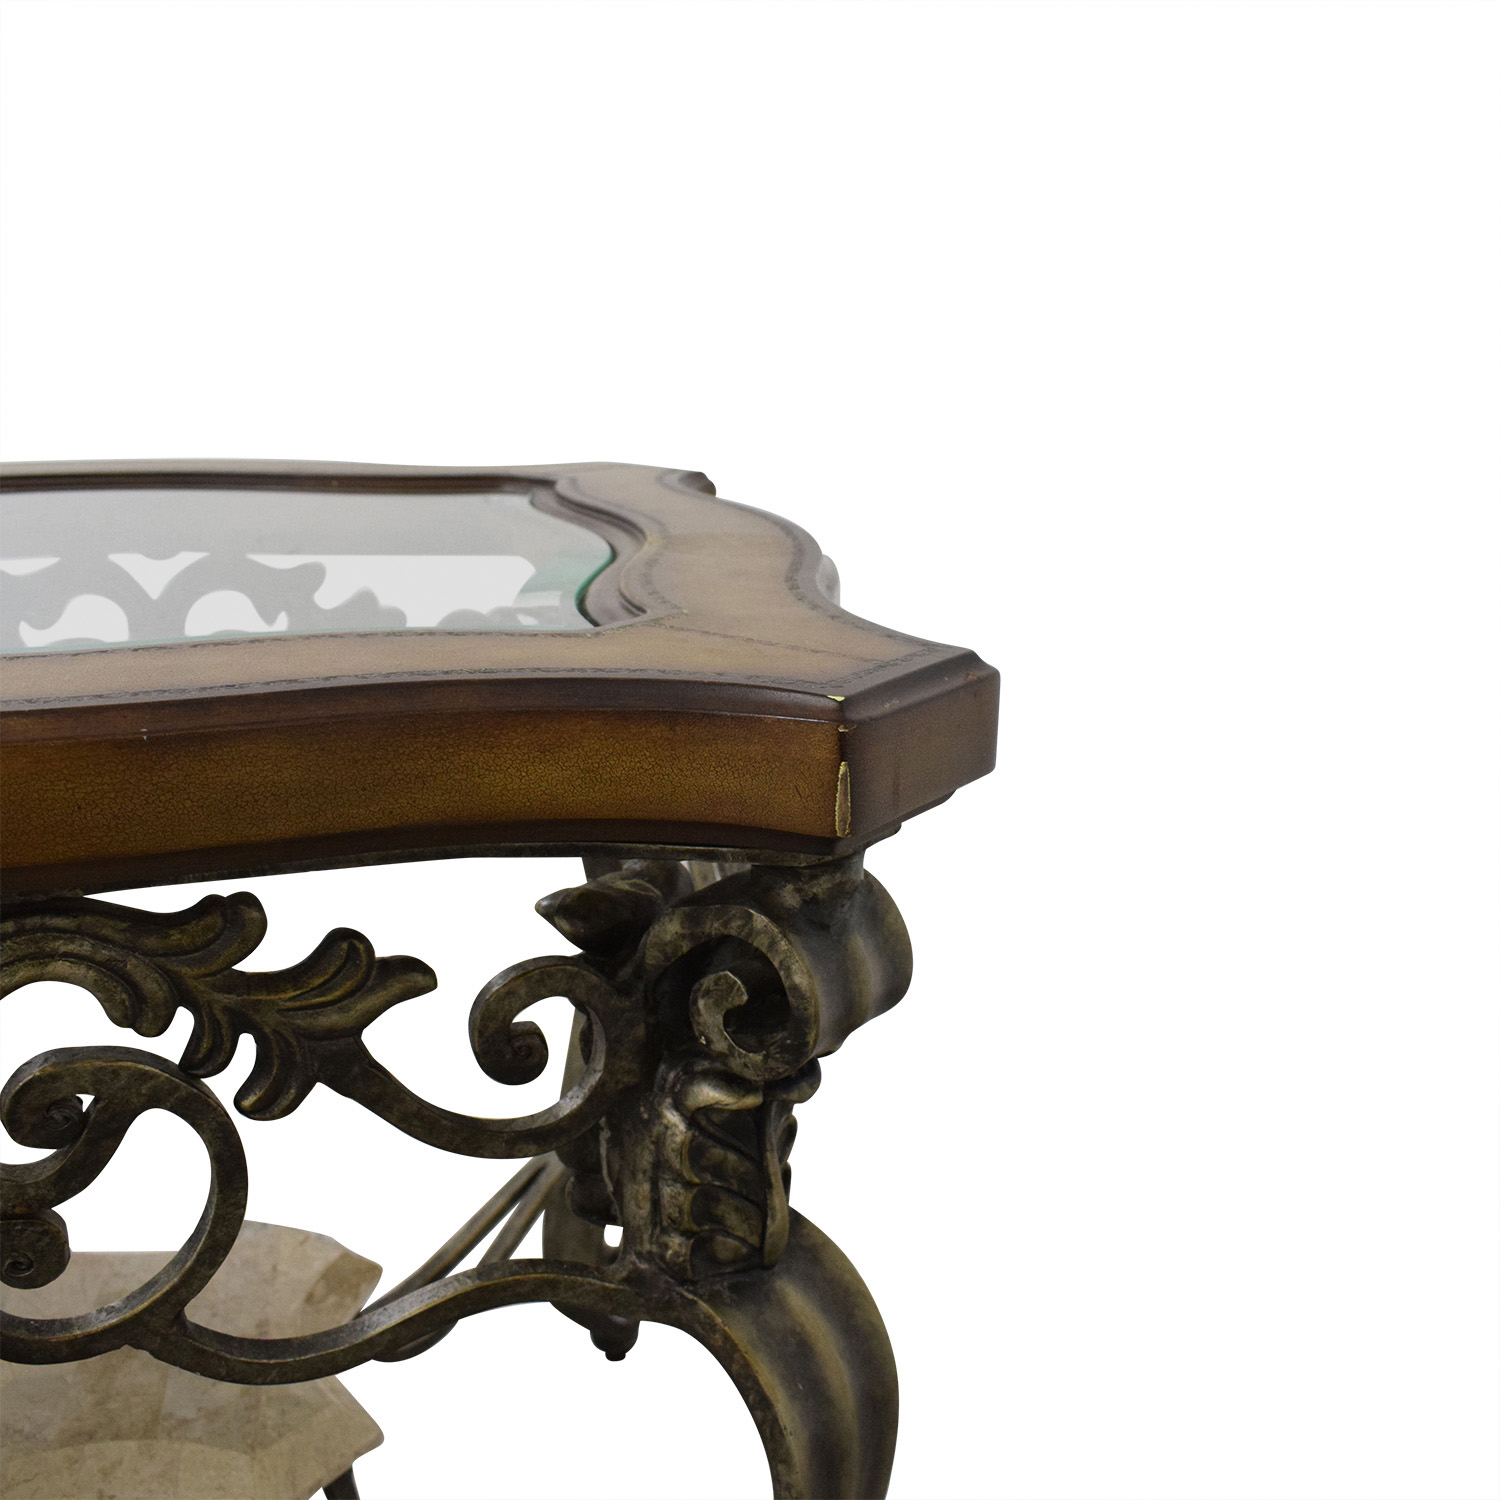 Thomasville Thomasville Decorative End Table End Tables